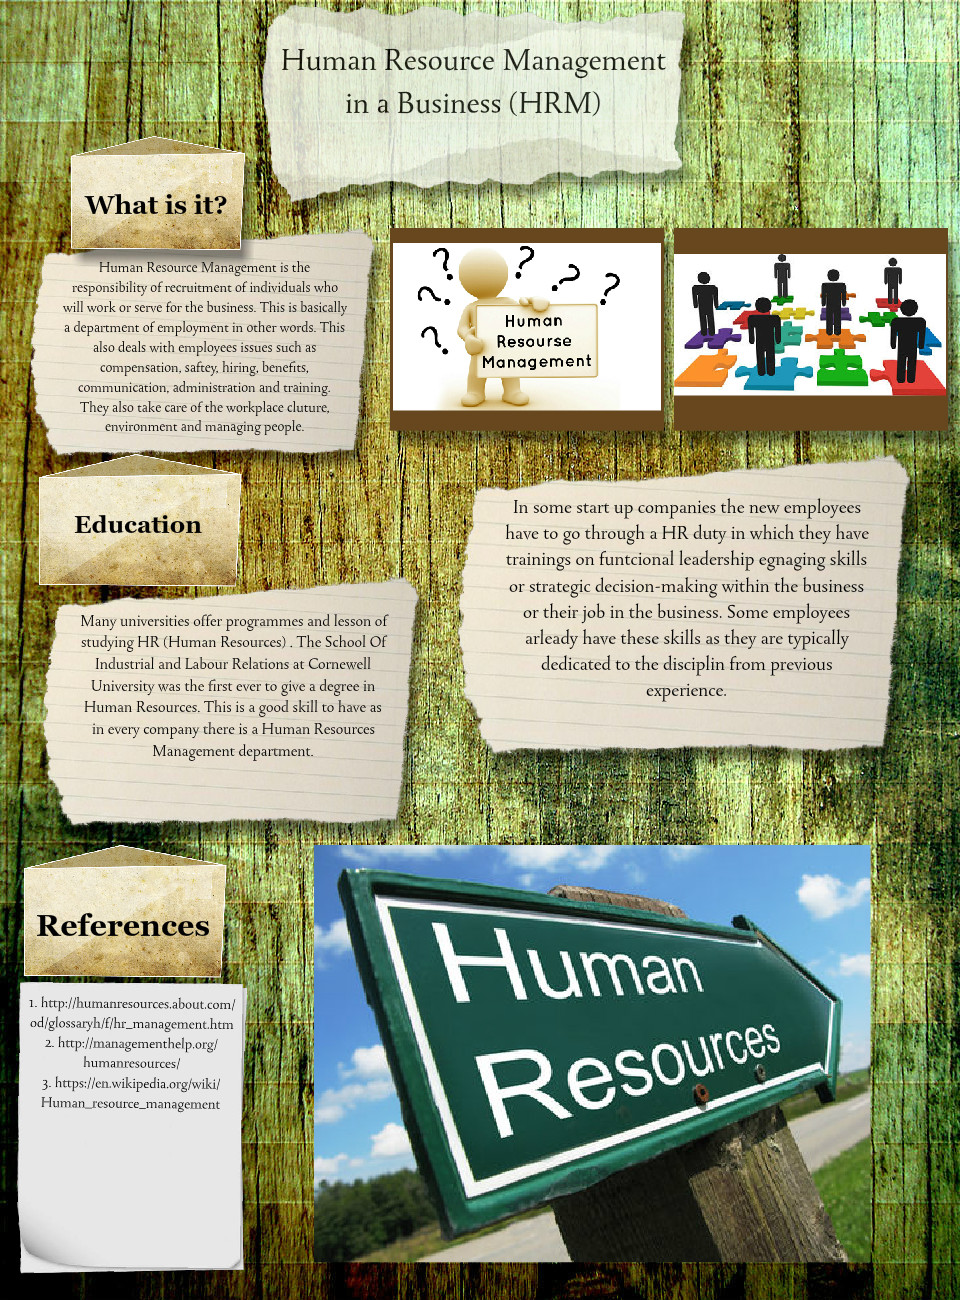 Human Resource Management in a Business